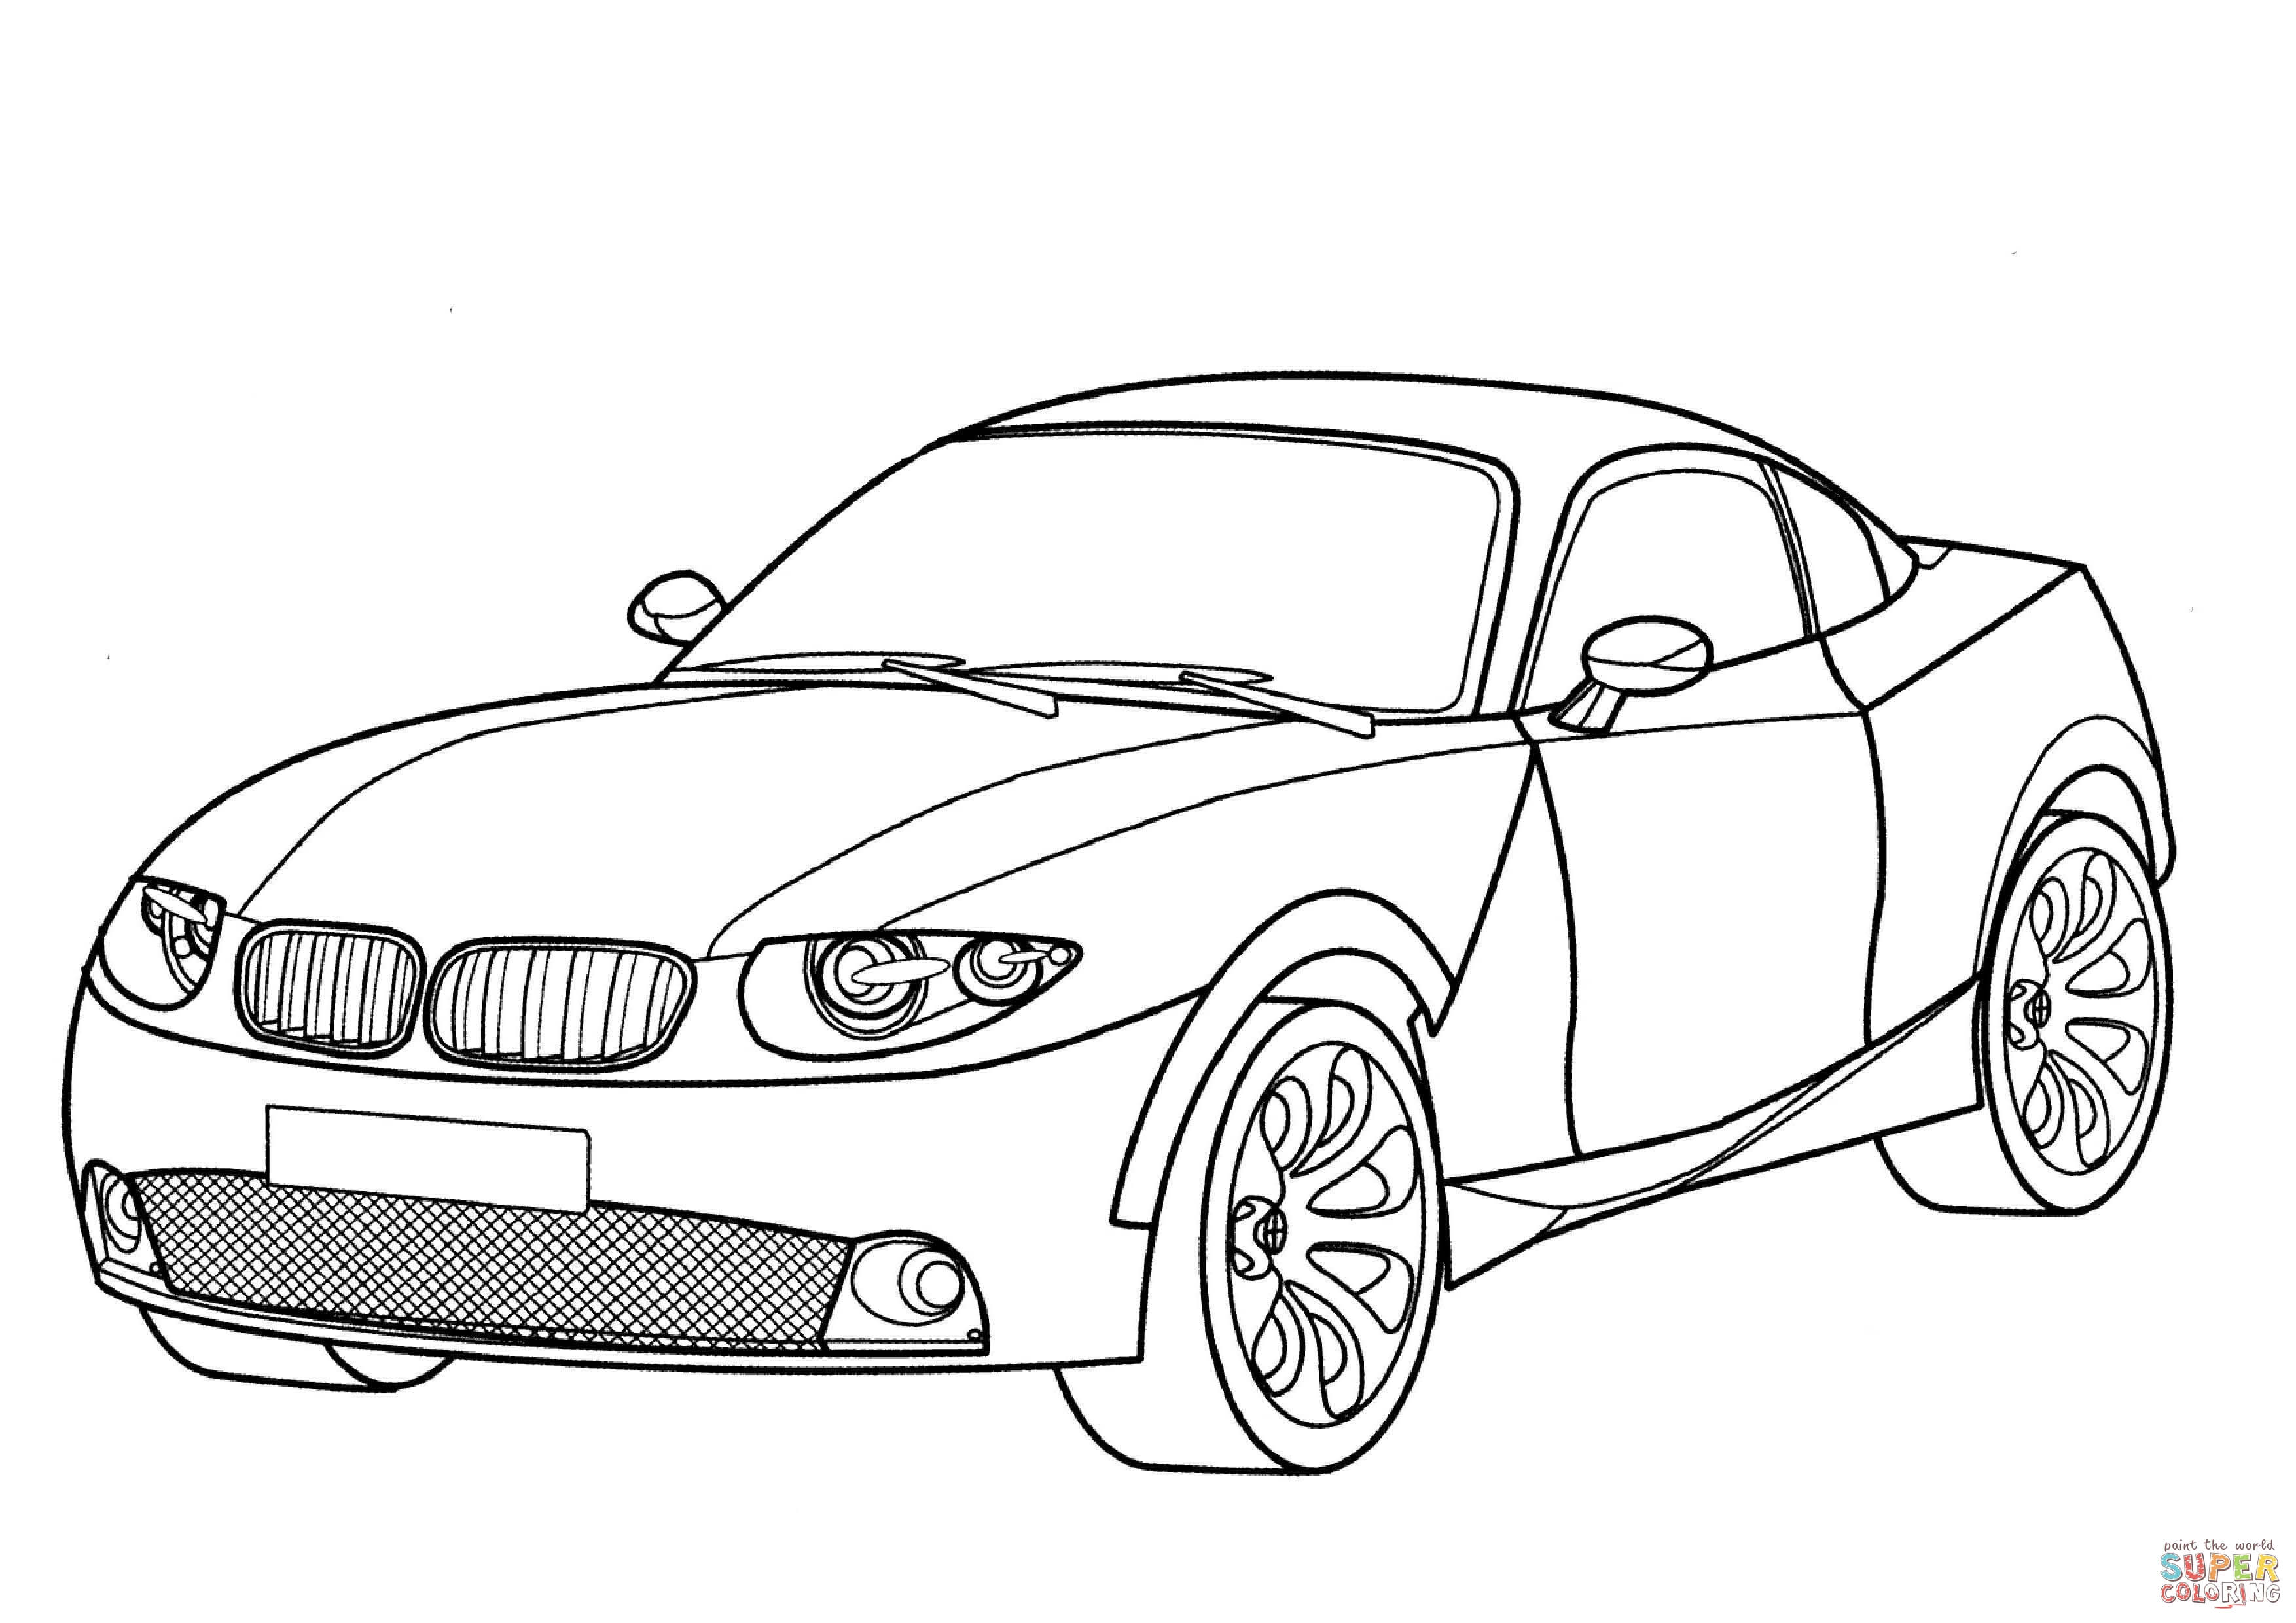 Smart Fortwo coloring page | Free Printable Coloring Pages | 2480x3508